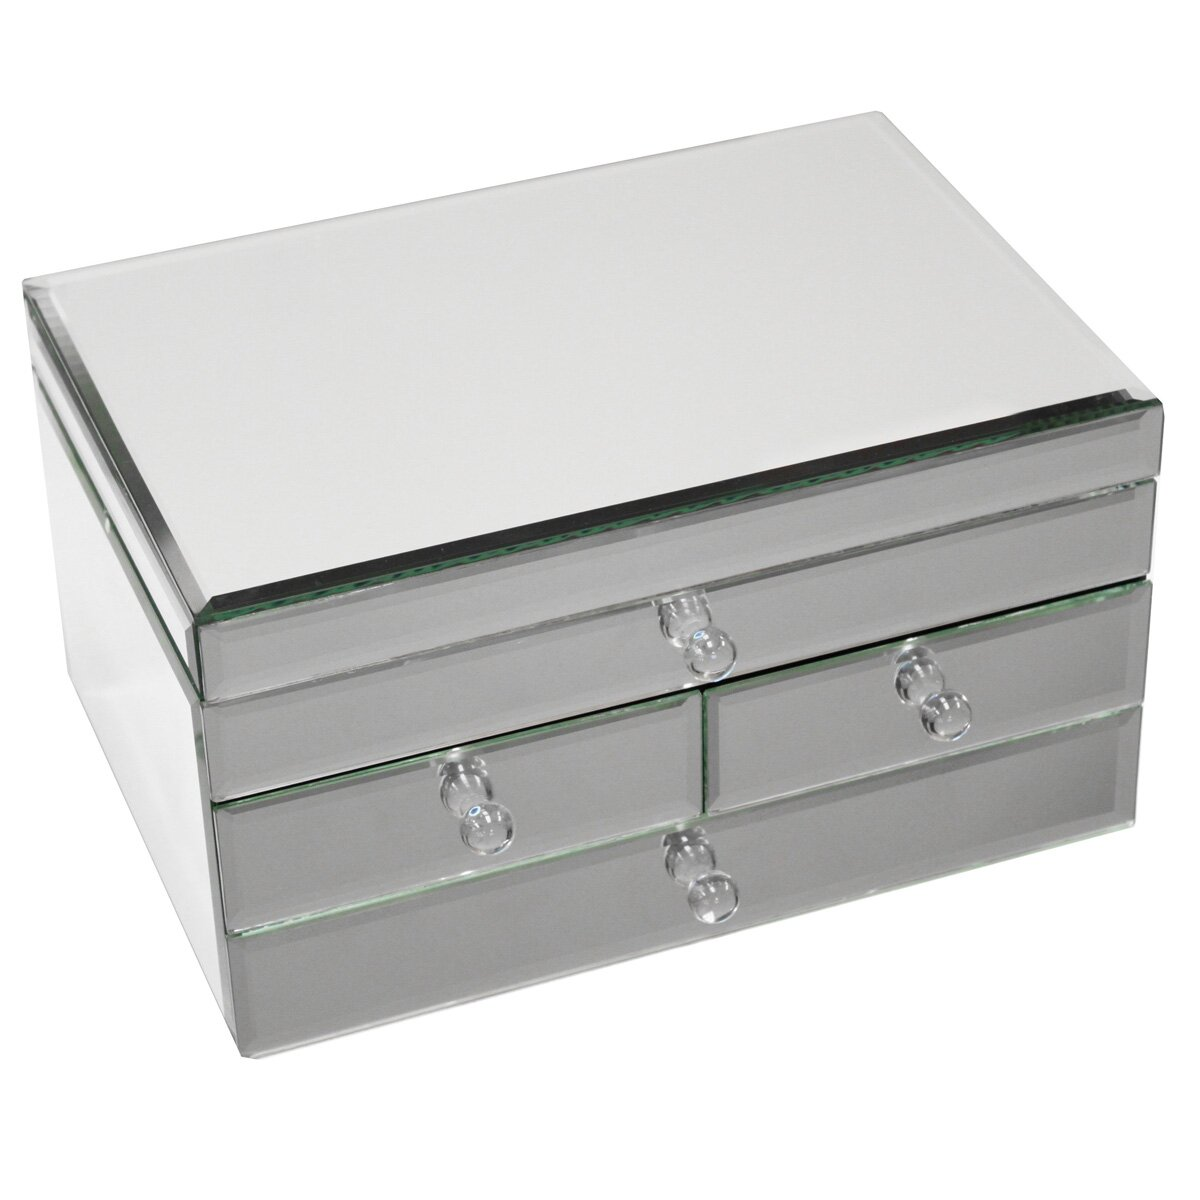 Ec world imports legacy 3 drawer jewellery box reviews for Mirror jewellery box